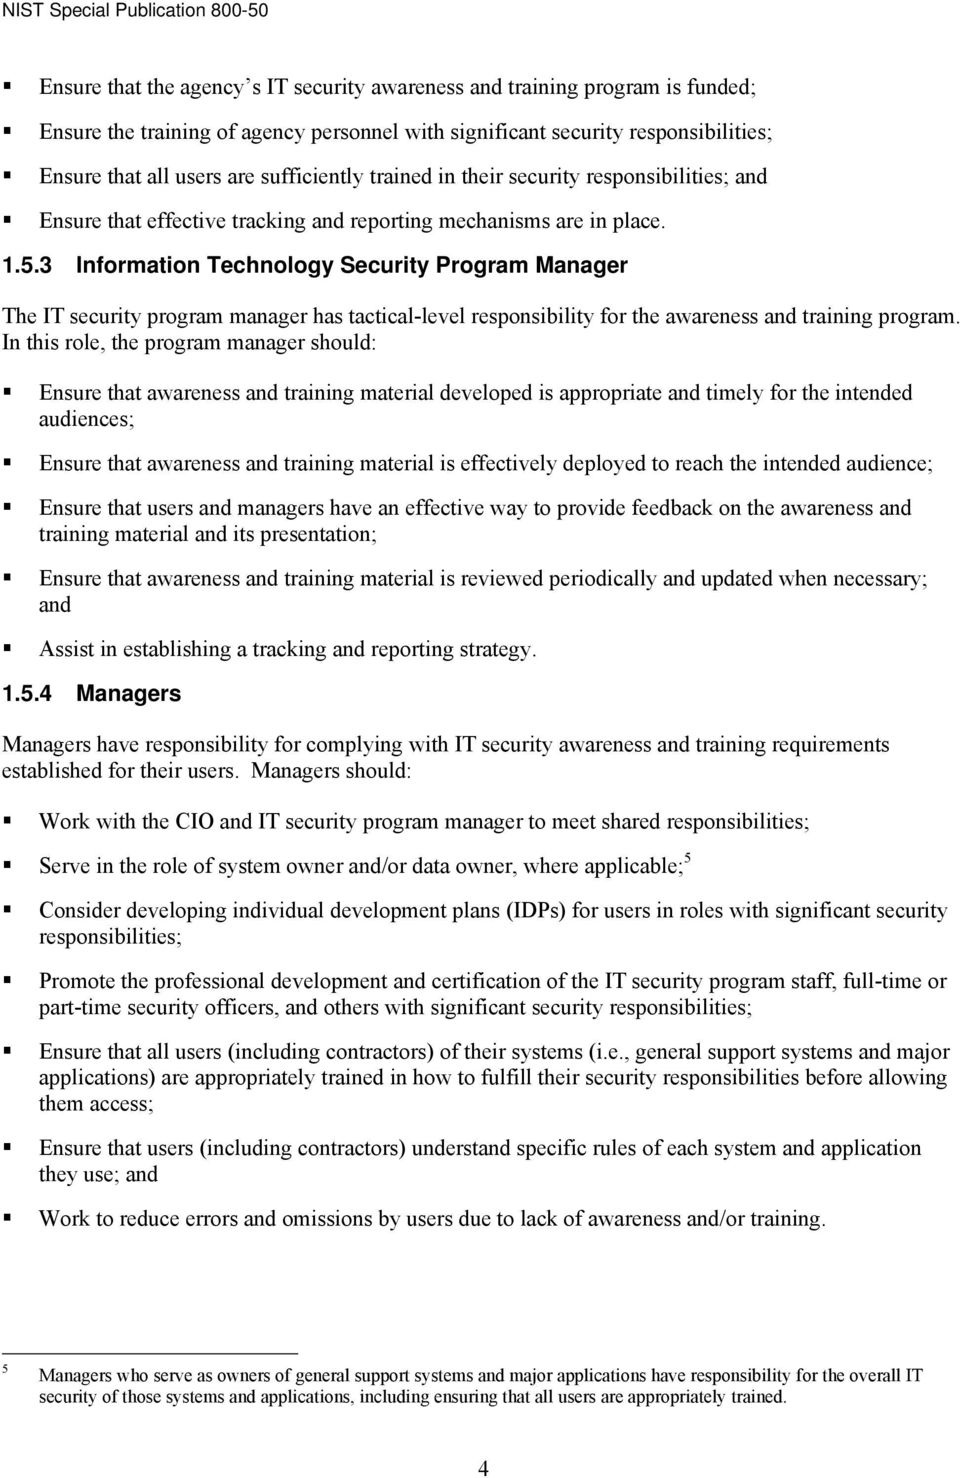 3 Information Technology Security Program Manager The IT security program manager has tactical-level responsibility for the awareness and training program.